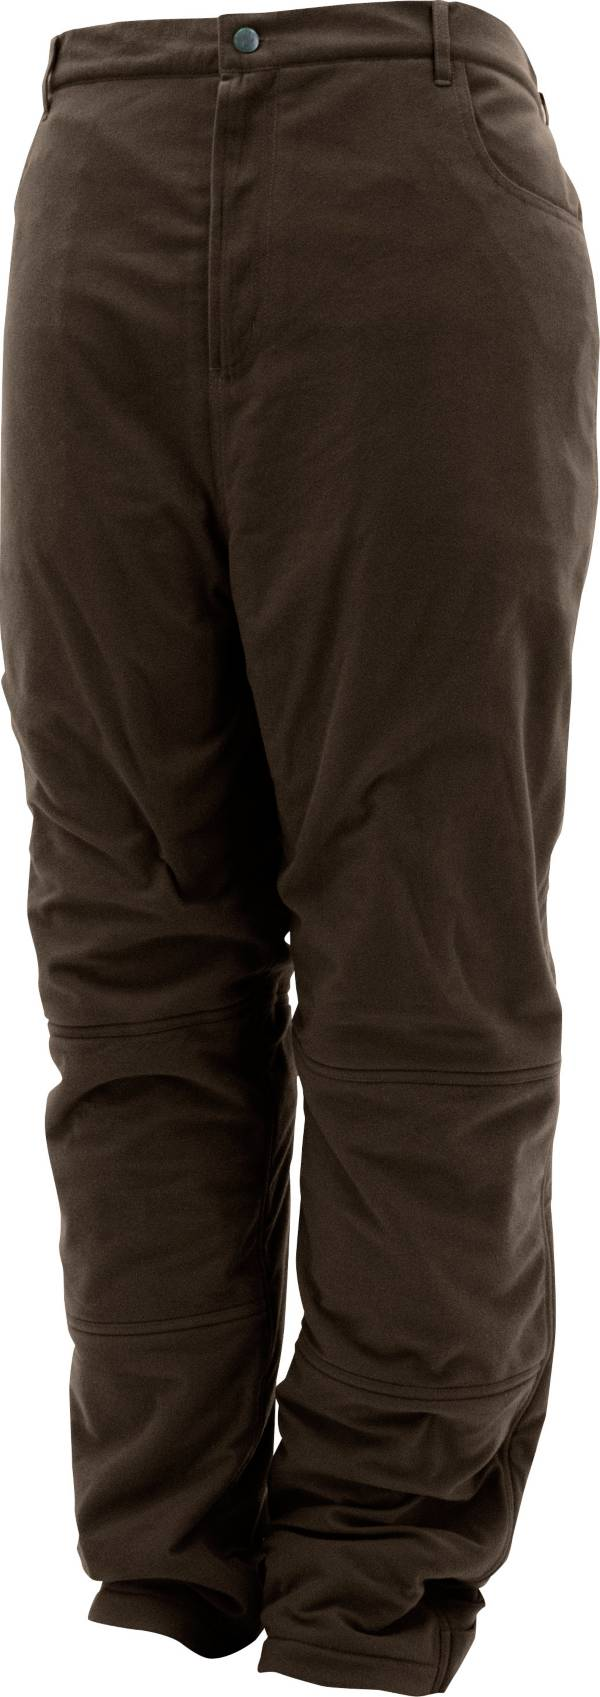 frogg toggs Men's frogg Fleece Lined Wader Pants product image